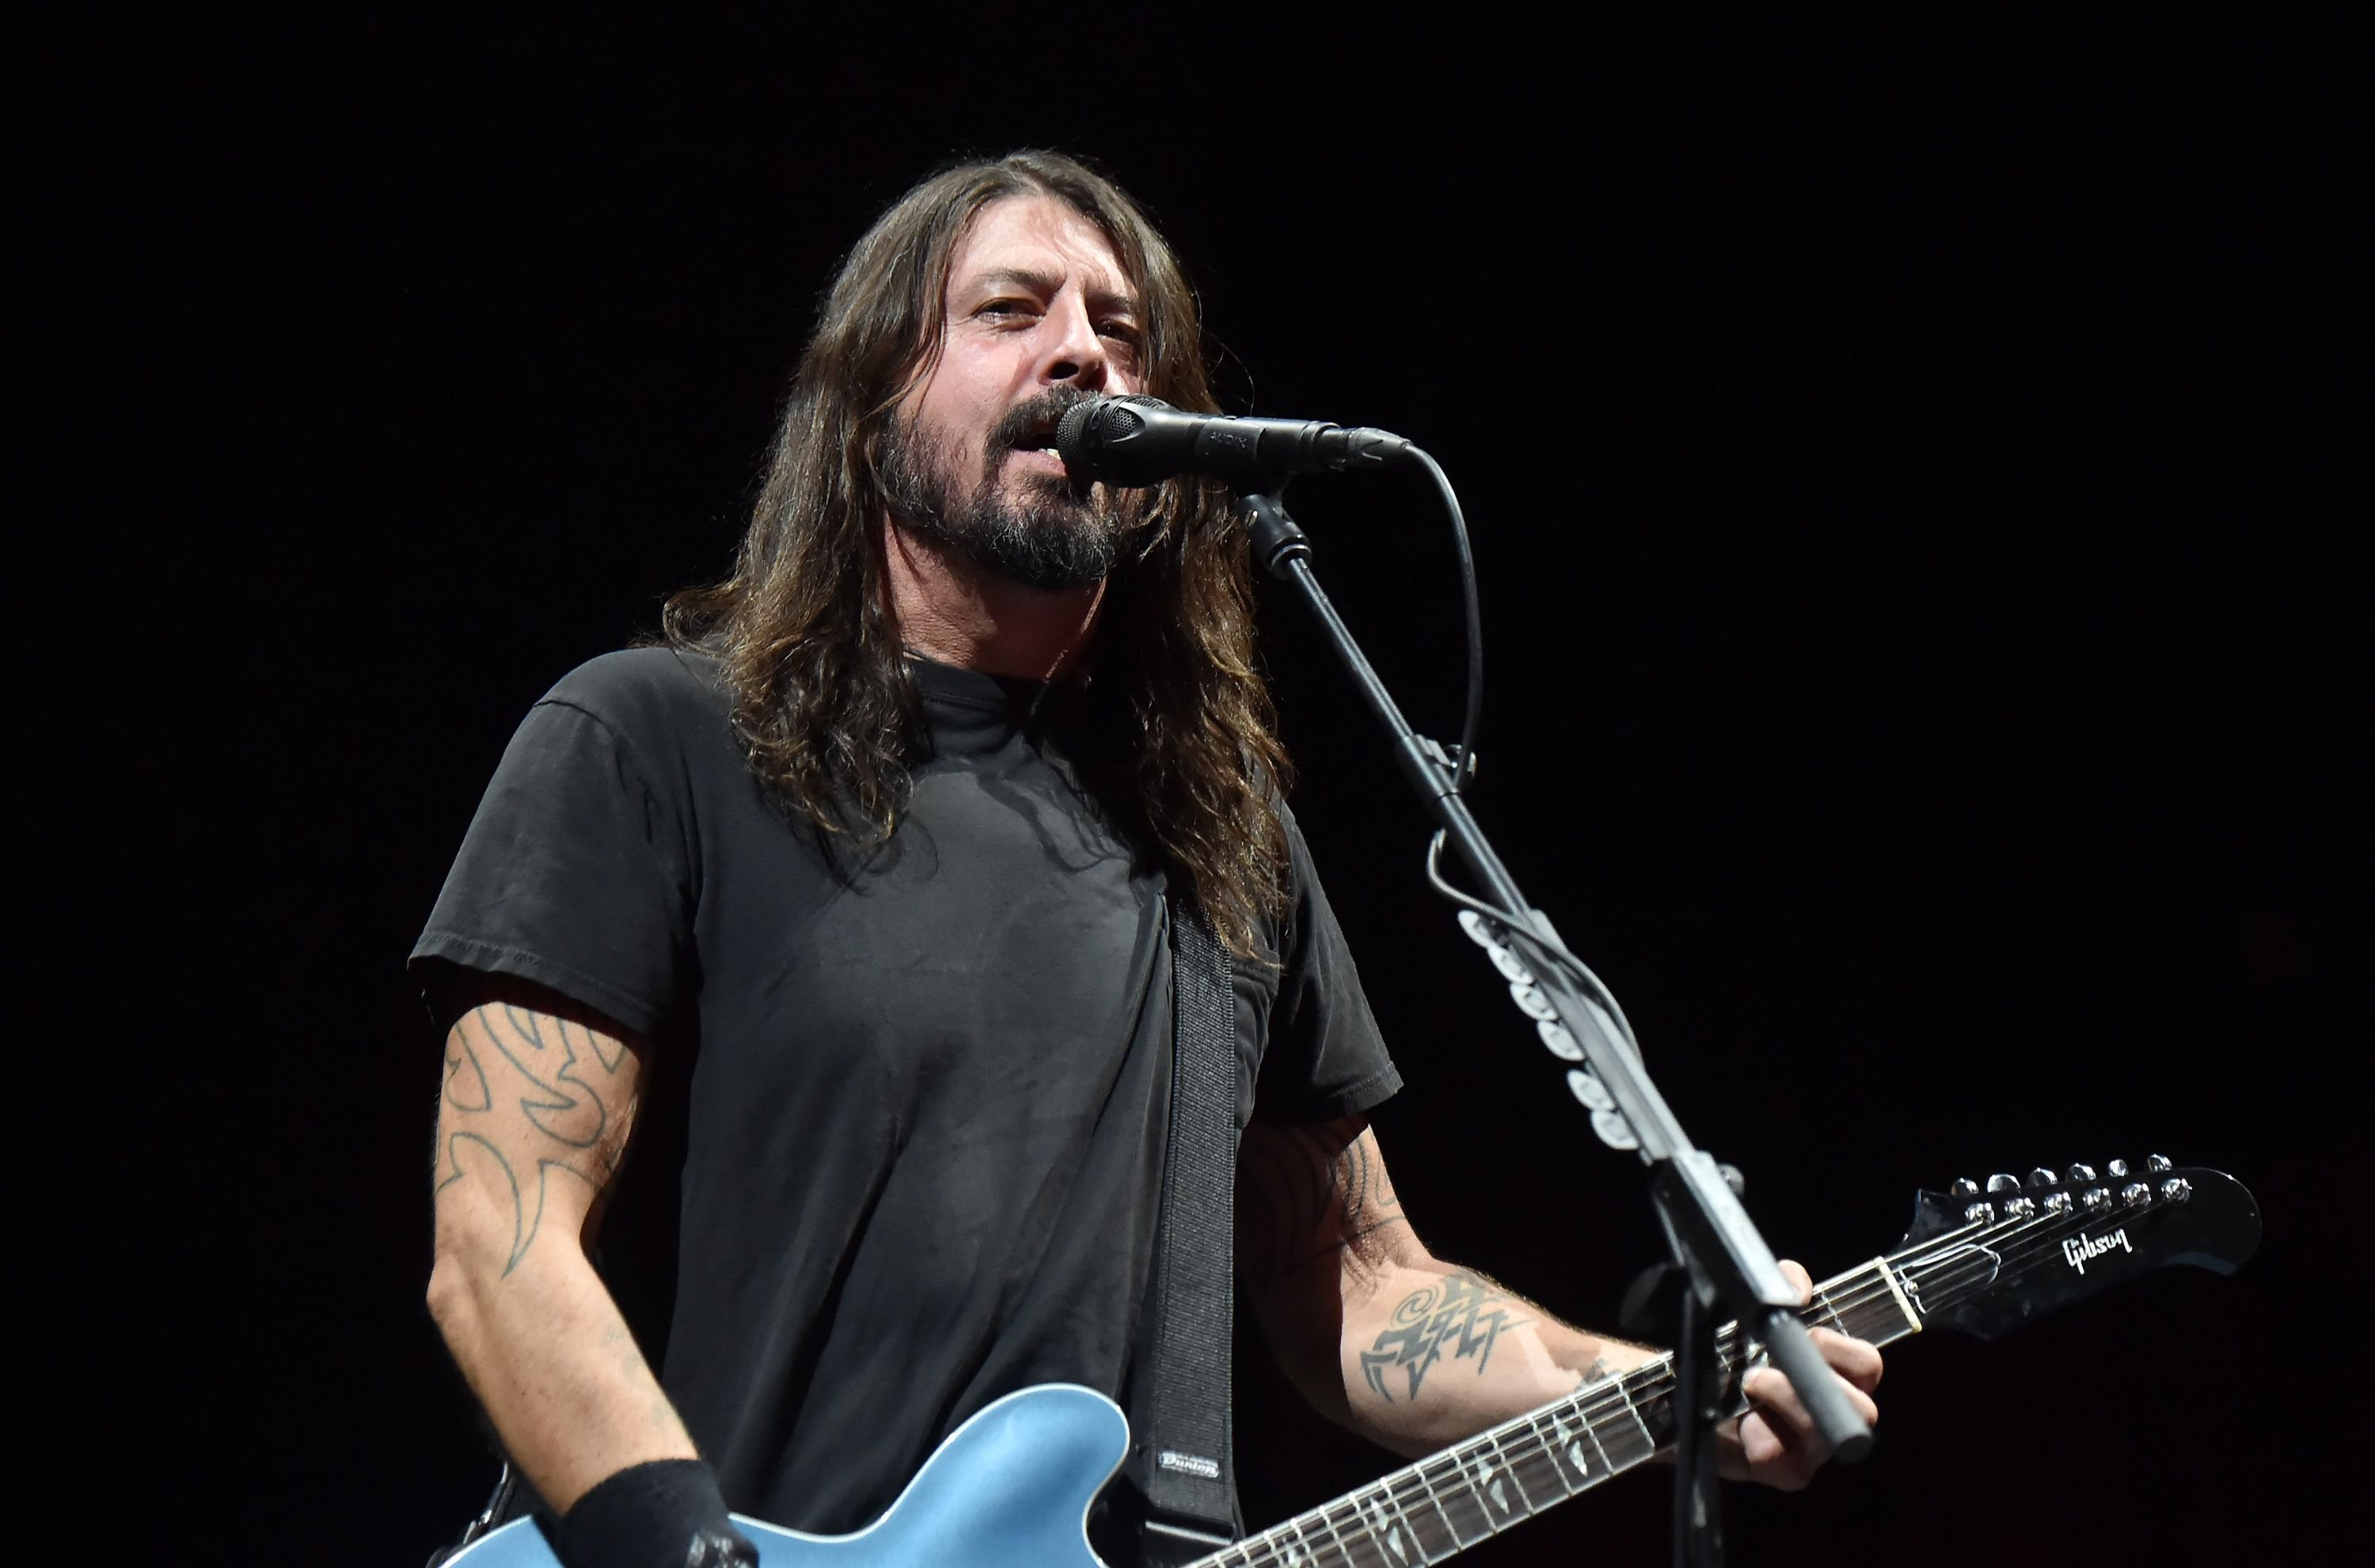 Dave Grohl of the Foo Fighters performs at Cal Jam on October 7, 2017   Photo: Getty Images